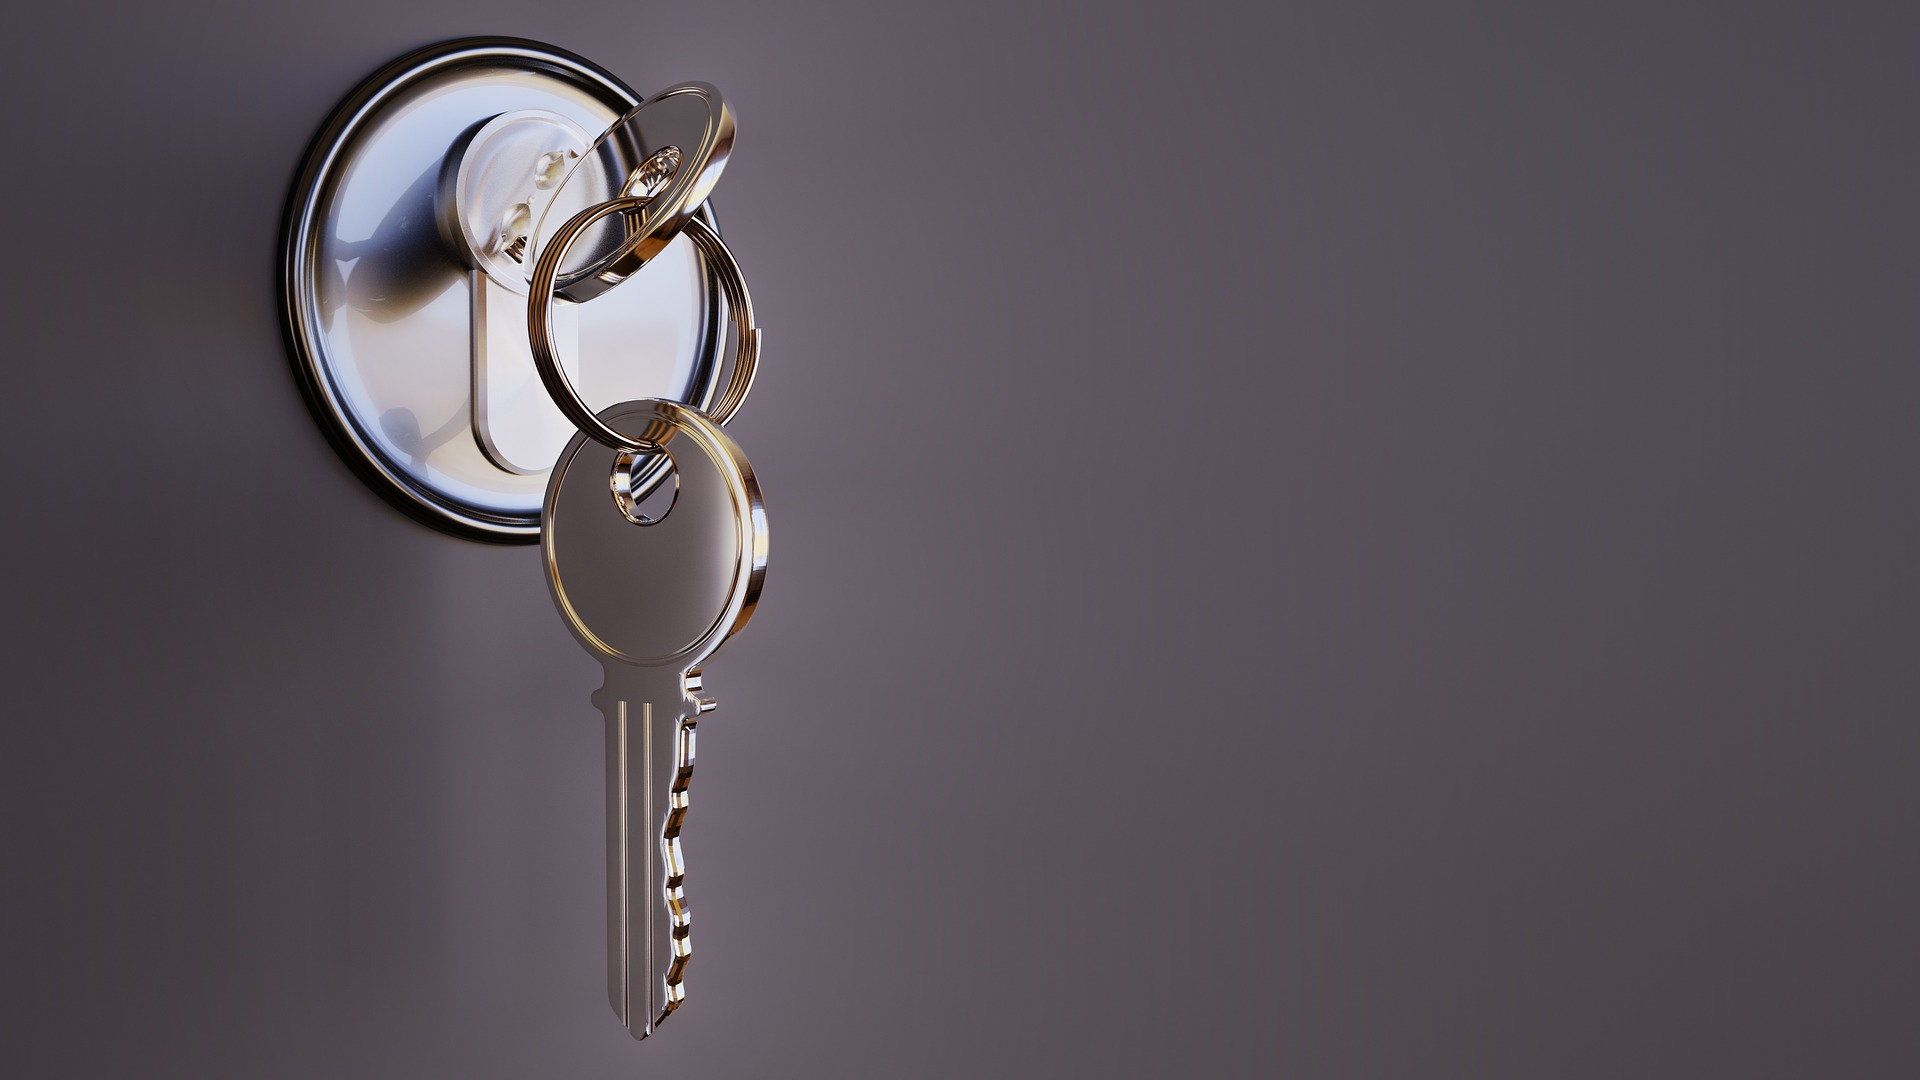 I Lost My Apartment Keys – Now What?